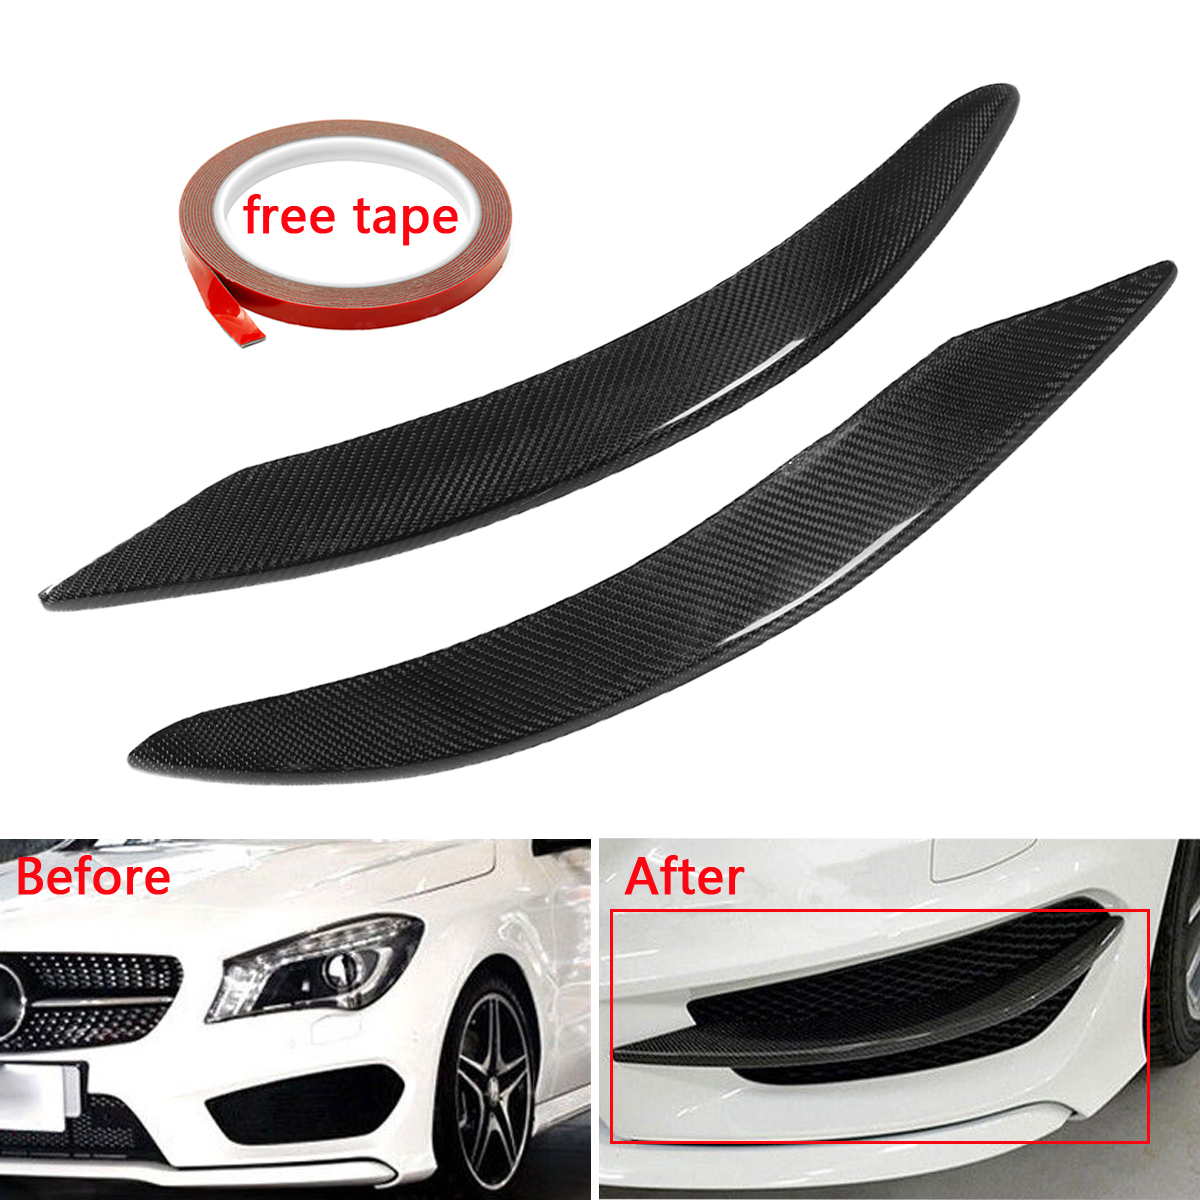 High quality 1pair Car Modified Real Carbon Fiber Front lip Splitter Spoiler Cup Flaps for Mercedes for Benz W117 C117 CLA F1010 for benz cla c117 w117 inner door window switch button cover 2014 2017 14pcs